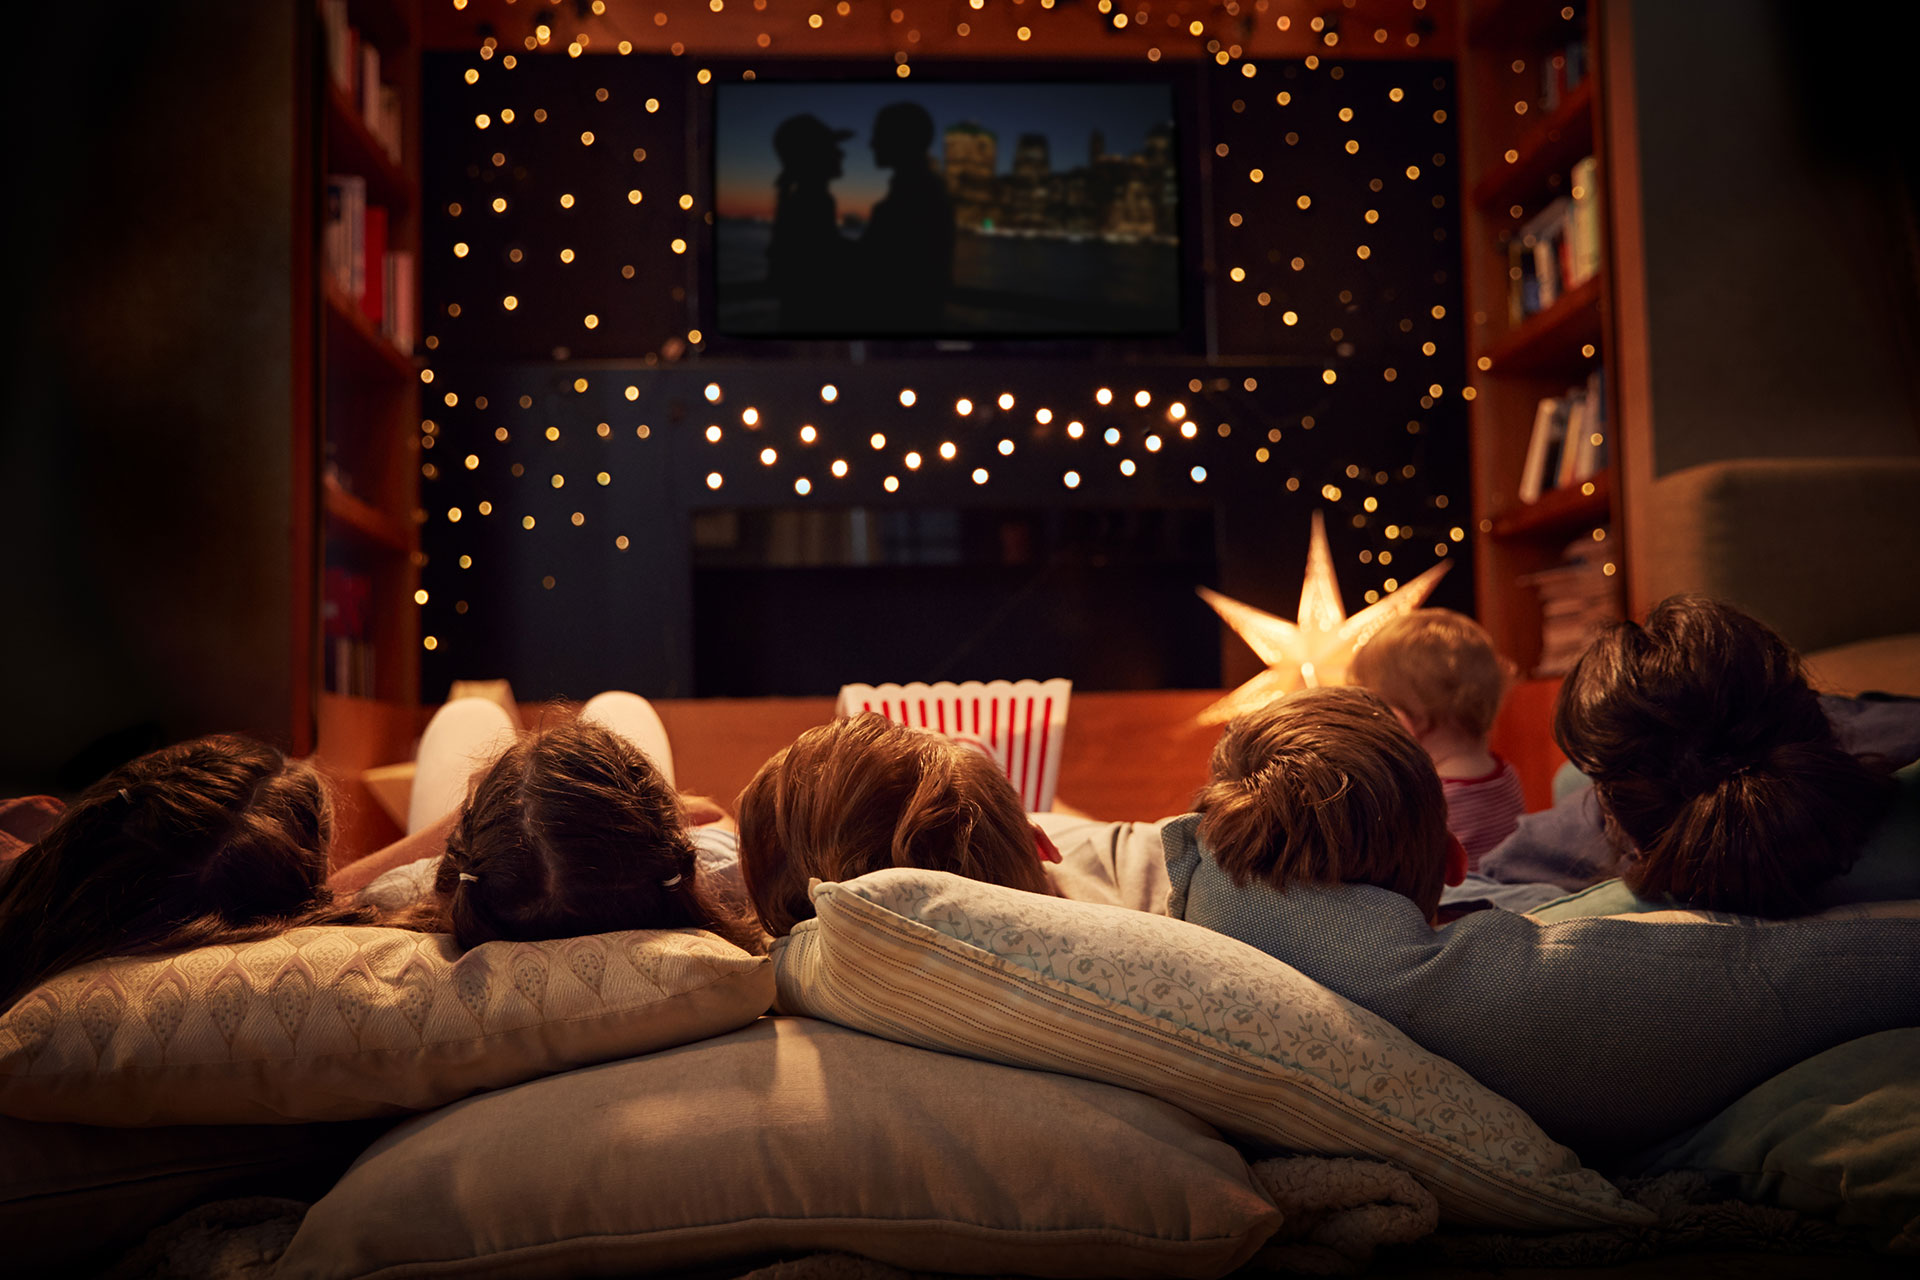 A family enjoying a movie night at home.